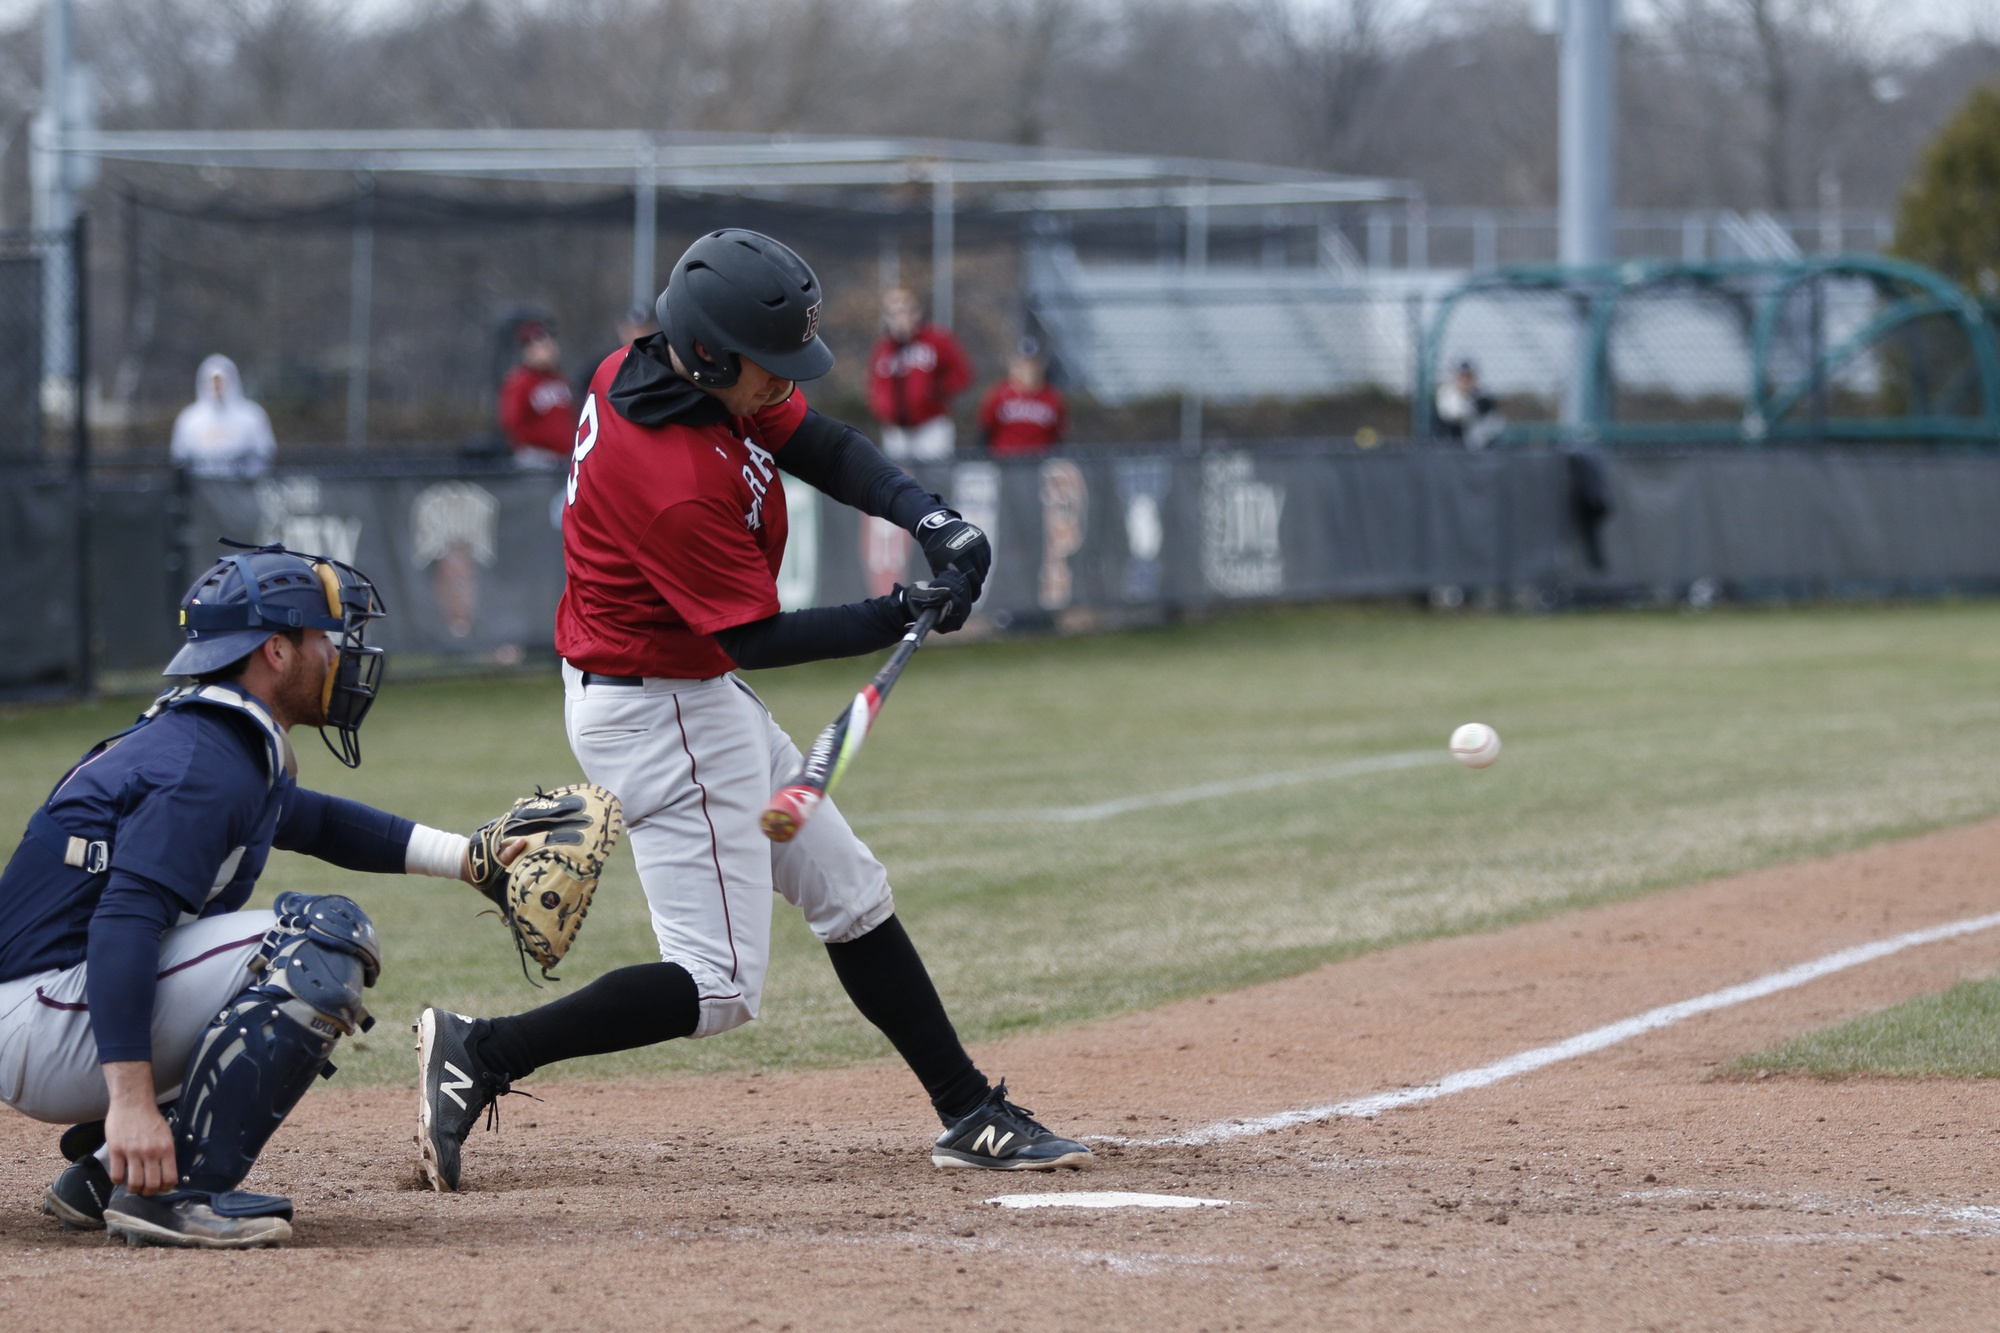 Harvard mounted a strong comeback Wednesday afternoon, rallying for eight runs after a six-run first inning for the Northeastern.